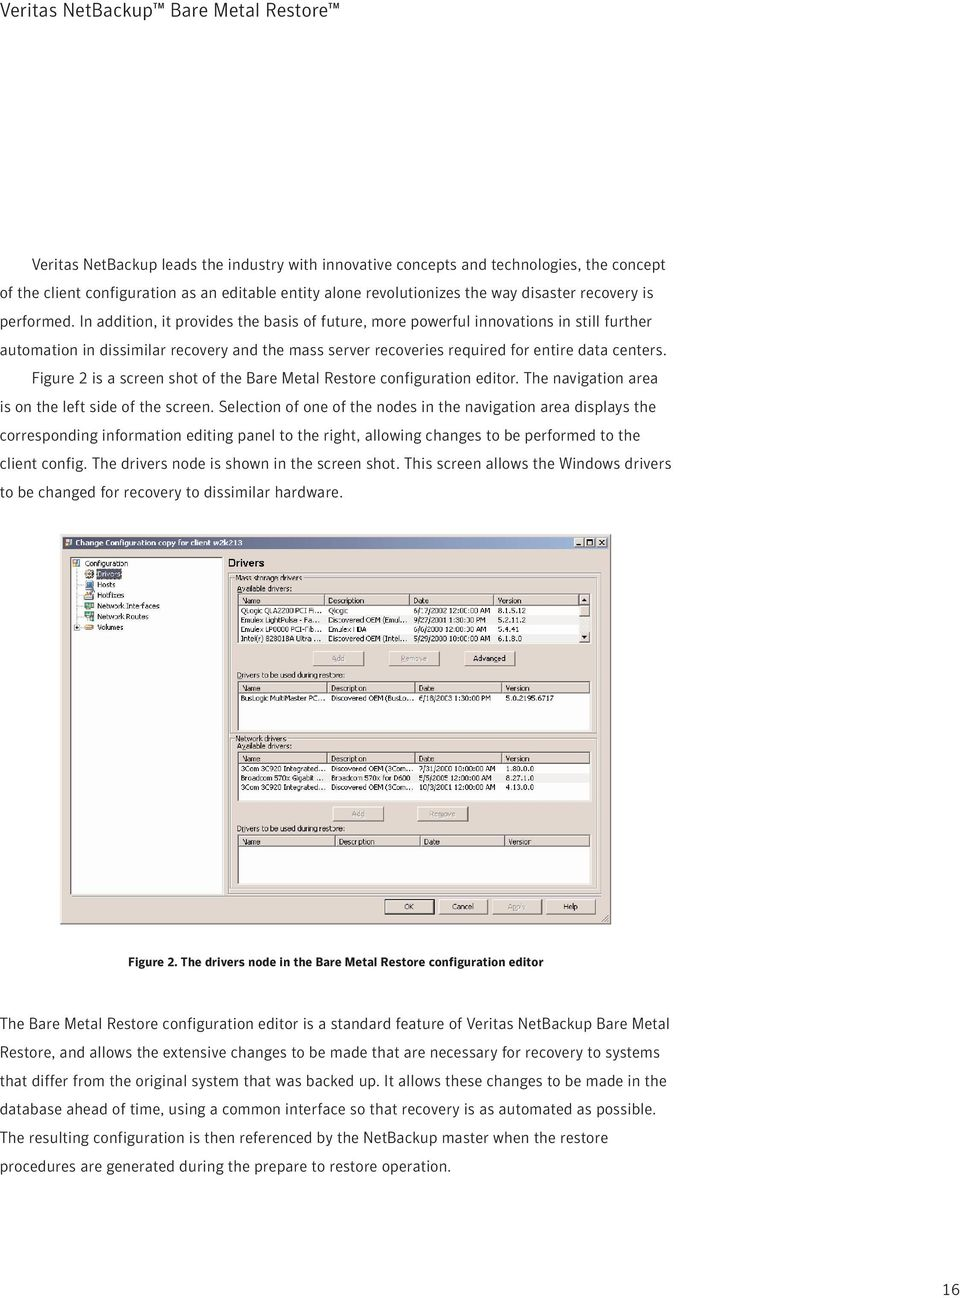 Figure 2 is a screen shot of the Bare Metal Restore configuration editor. The navigation area is on the left side of the screen.